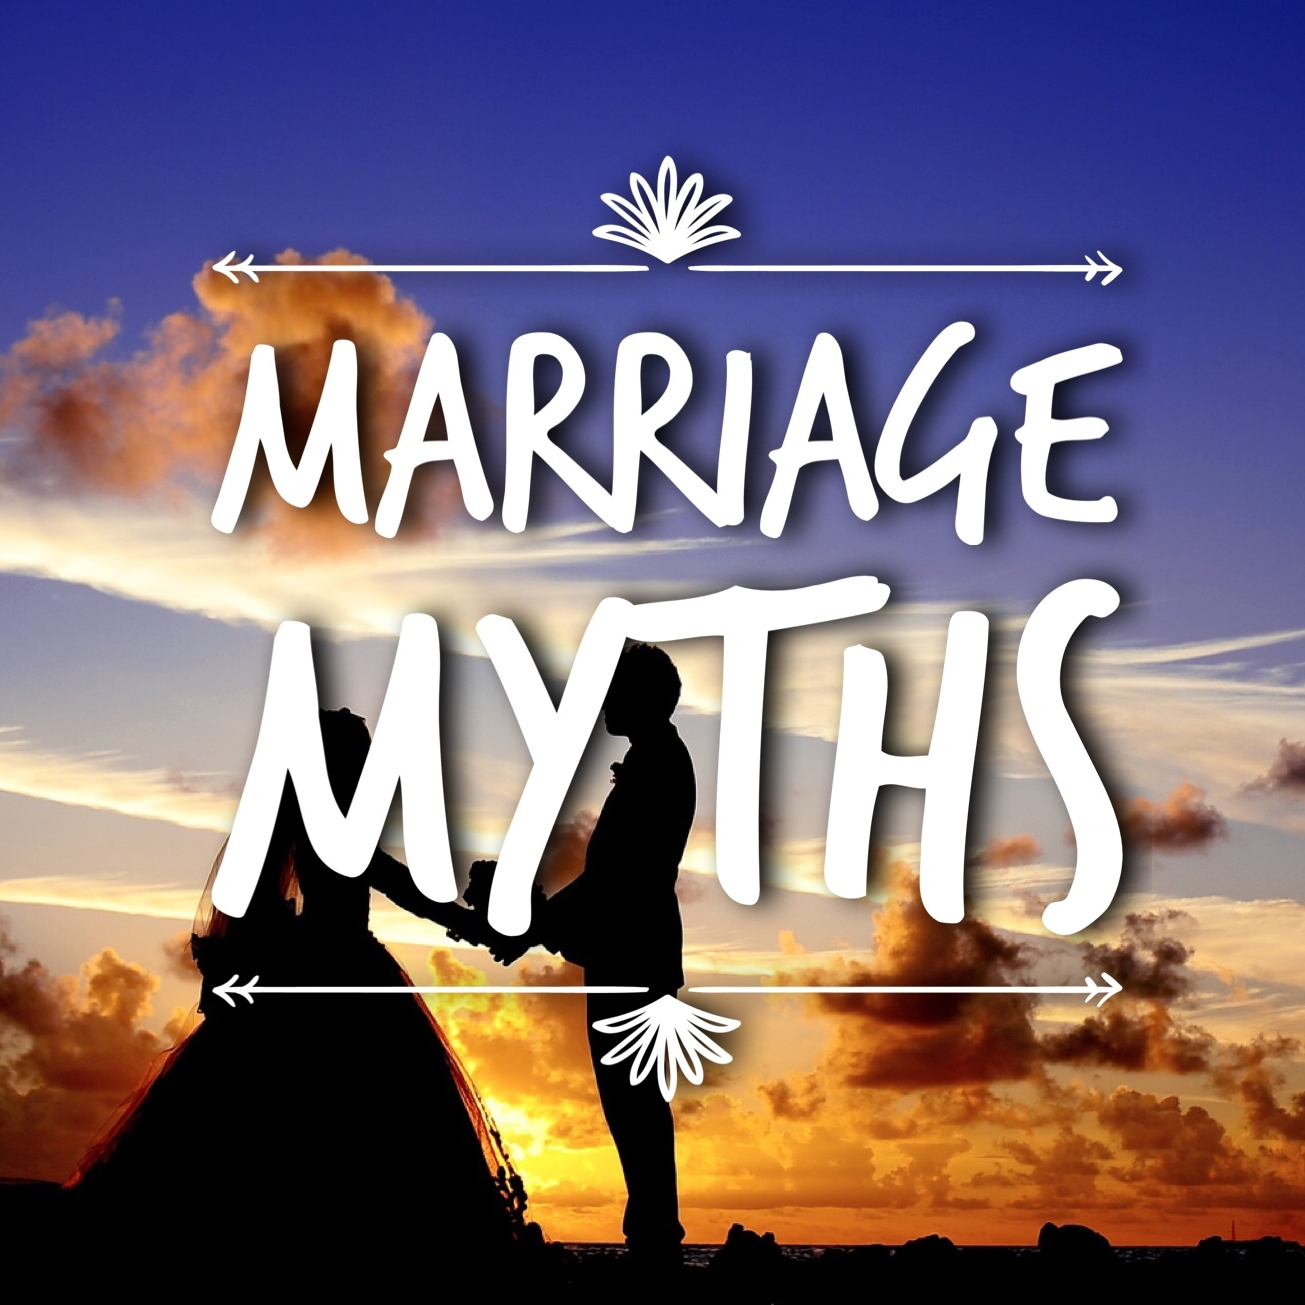 Myths of marriage